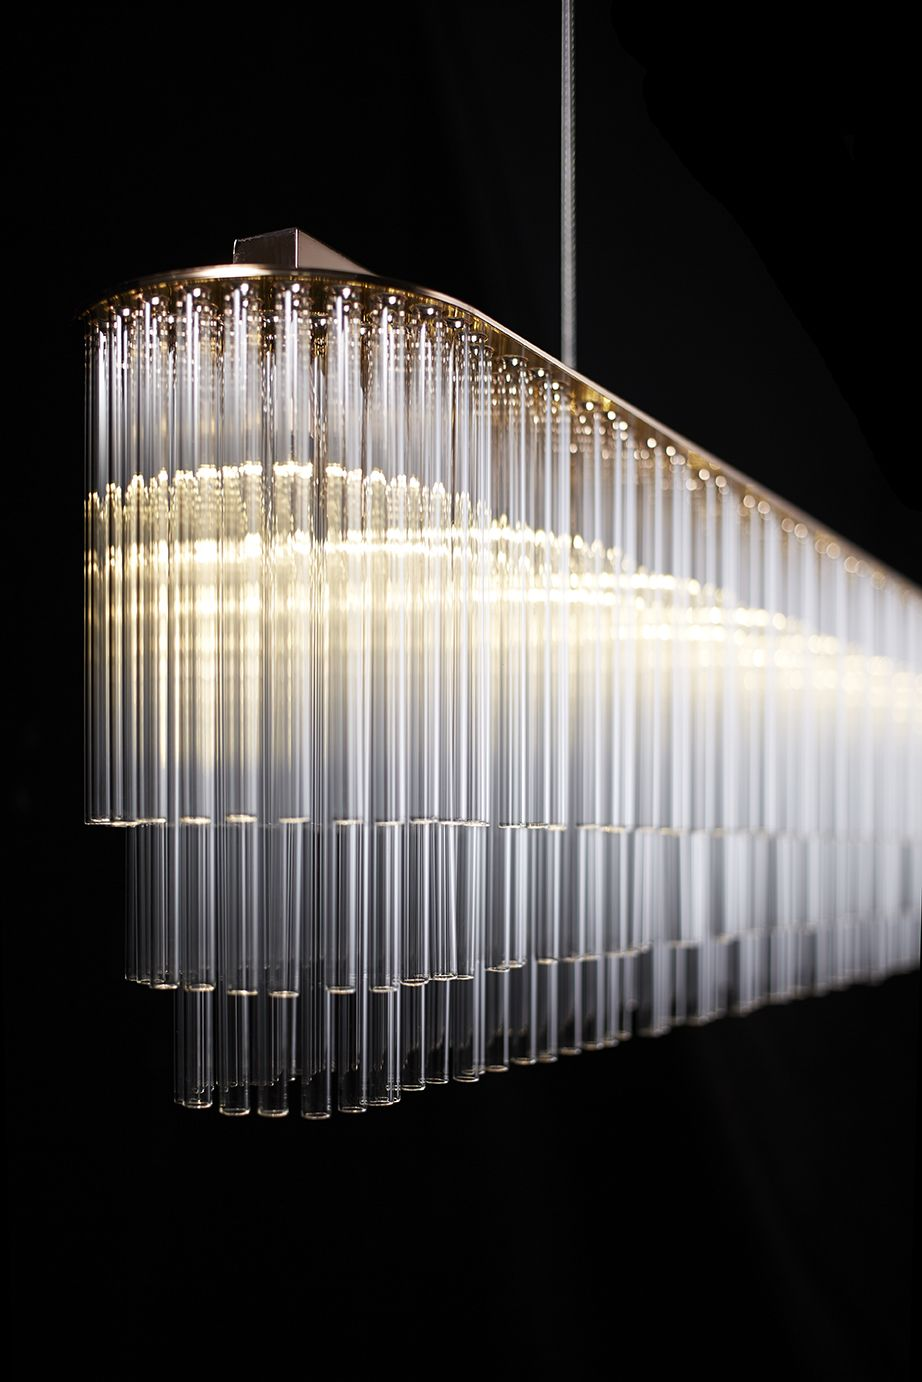 Linear chandelier contemporary lighting products celling lamp linear chandelier contemporary lighting products mozeypictures Gallery